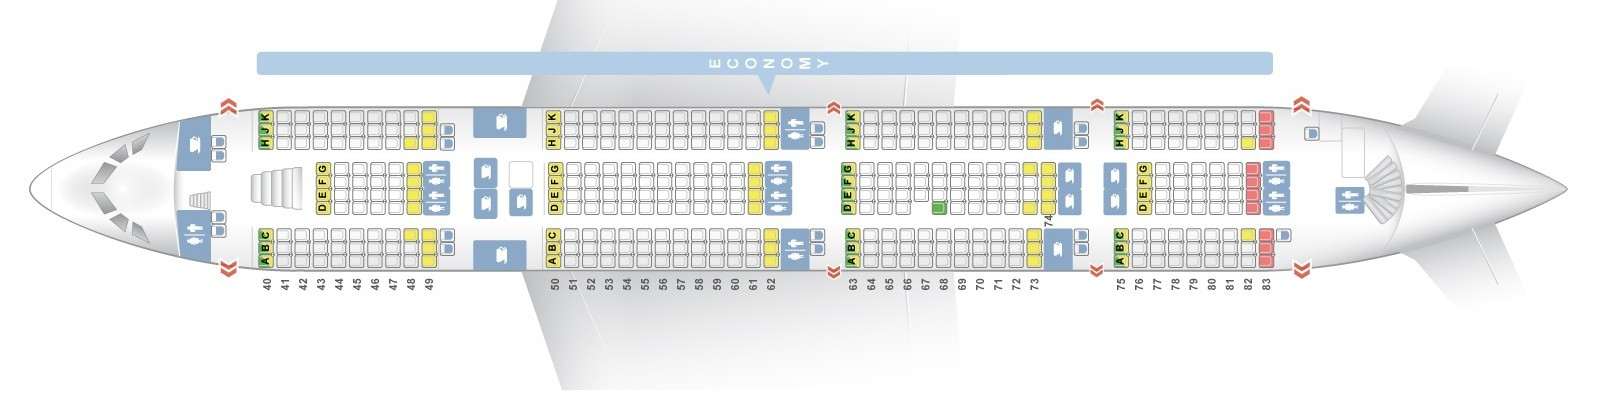 A380 800 Seat Map